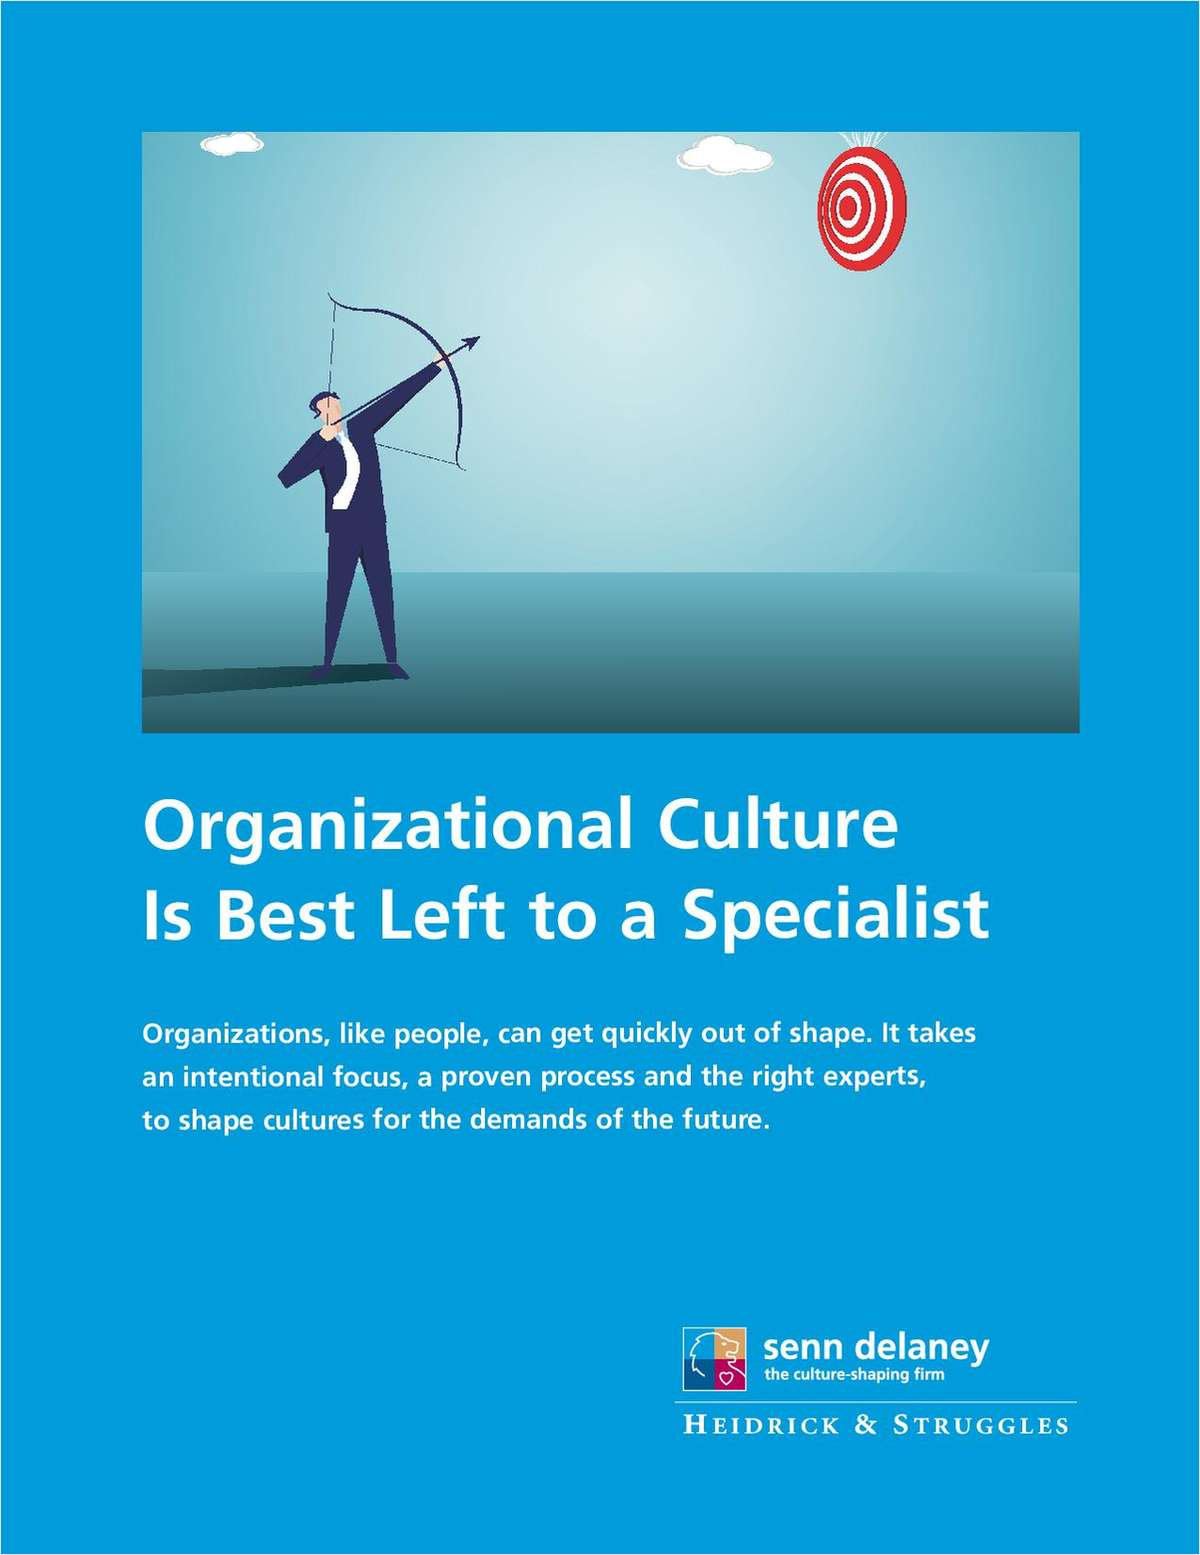 Organizational Culture is Best Left to a Specialist